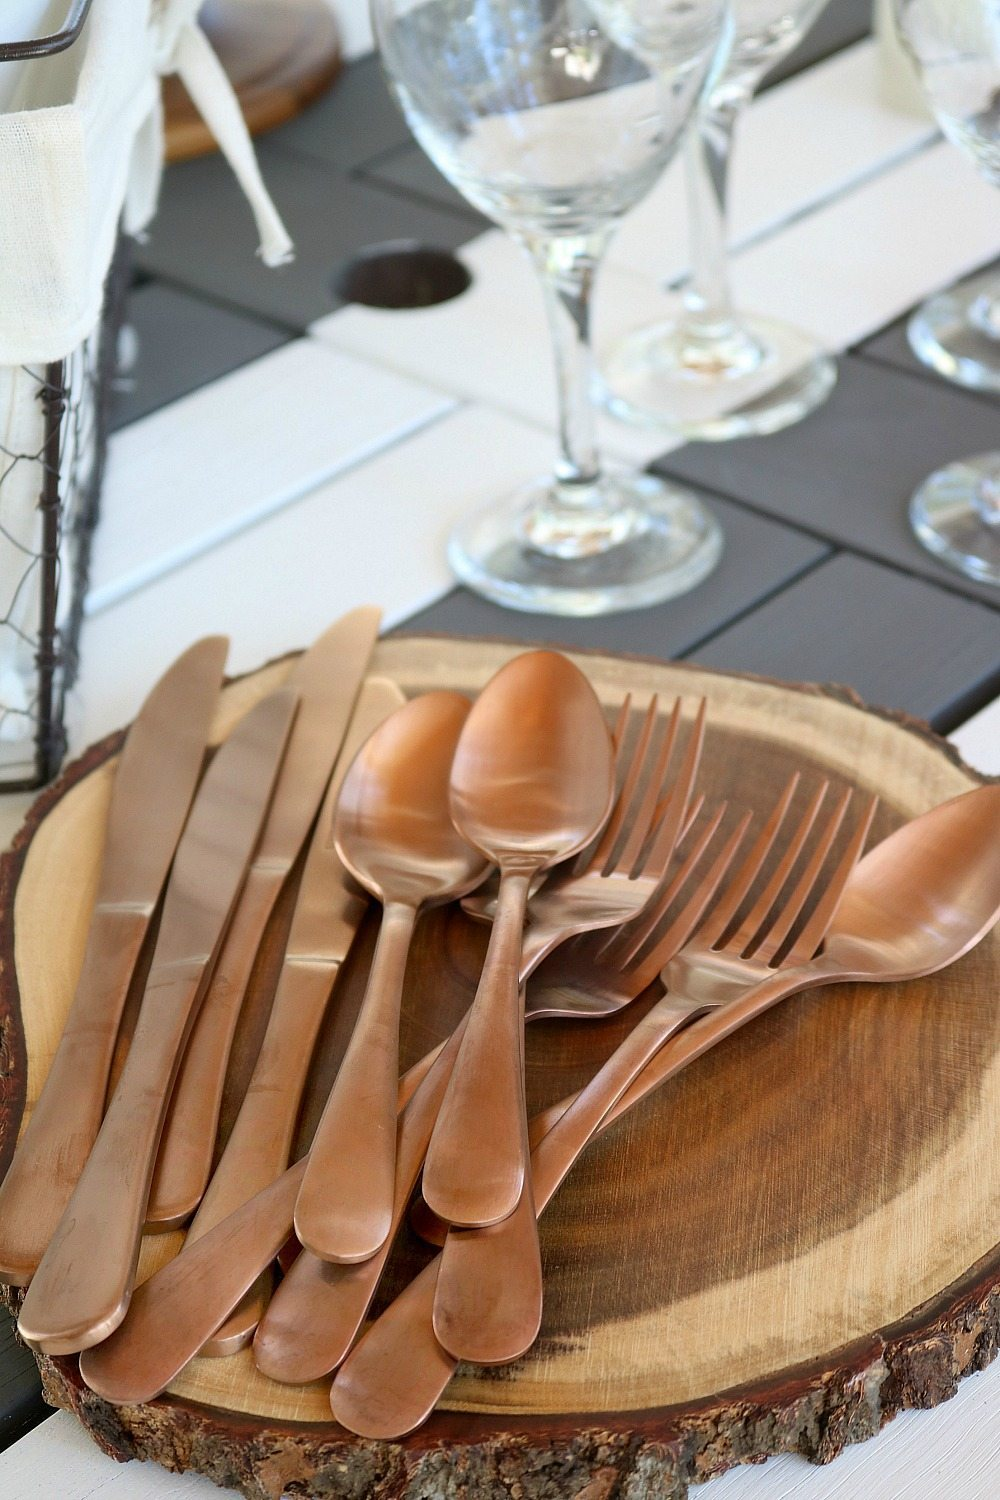 Copper tone flatware from Better Homes and Gardens at Walmart